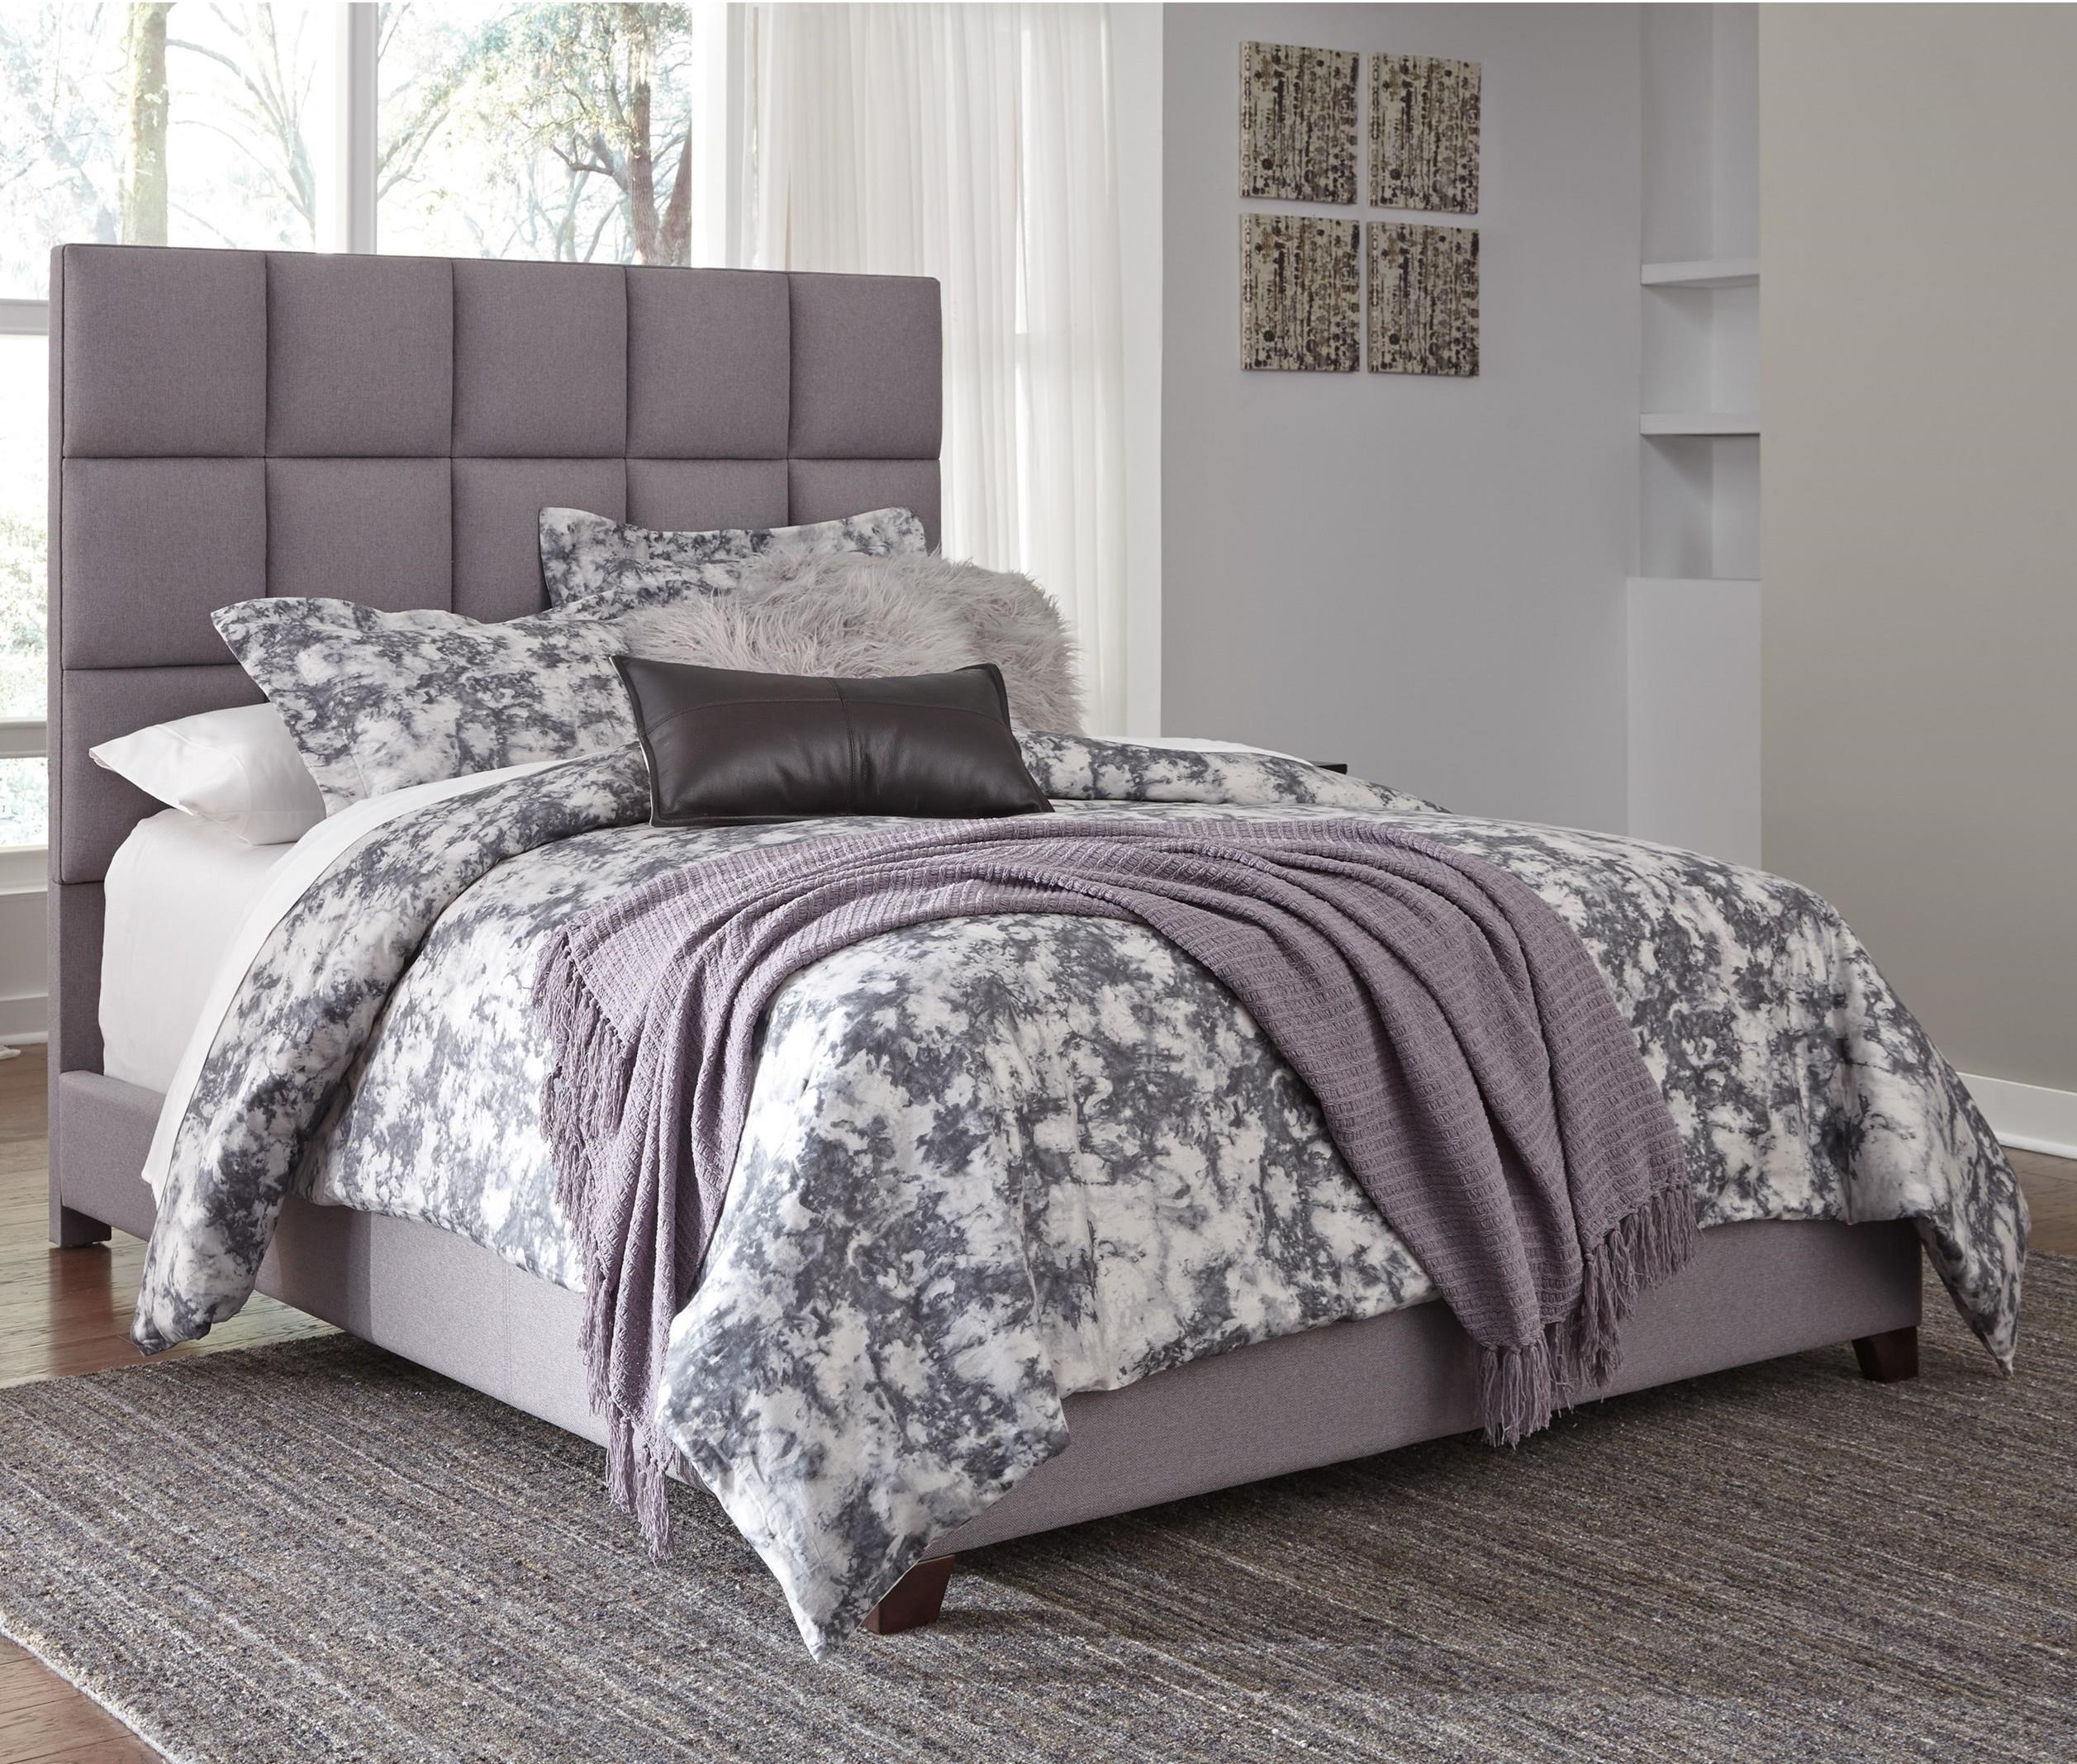 Signature Design By Ashley Dolante Queen Upholstered Bed In Gray Fabric Boulevard Home